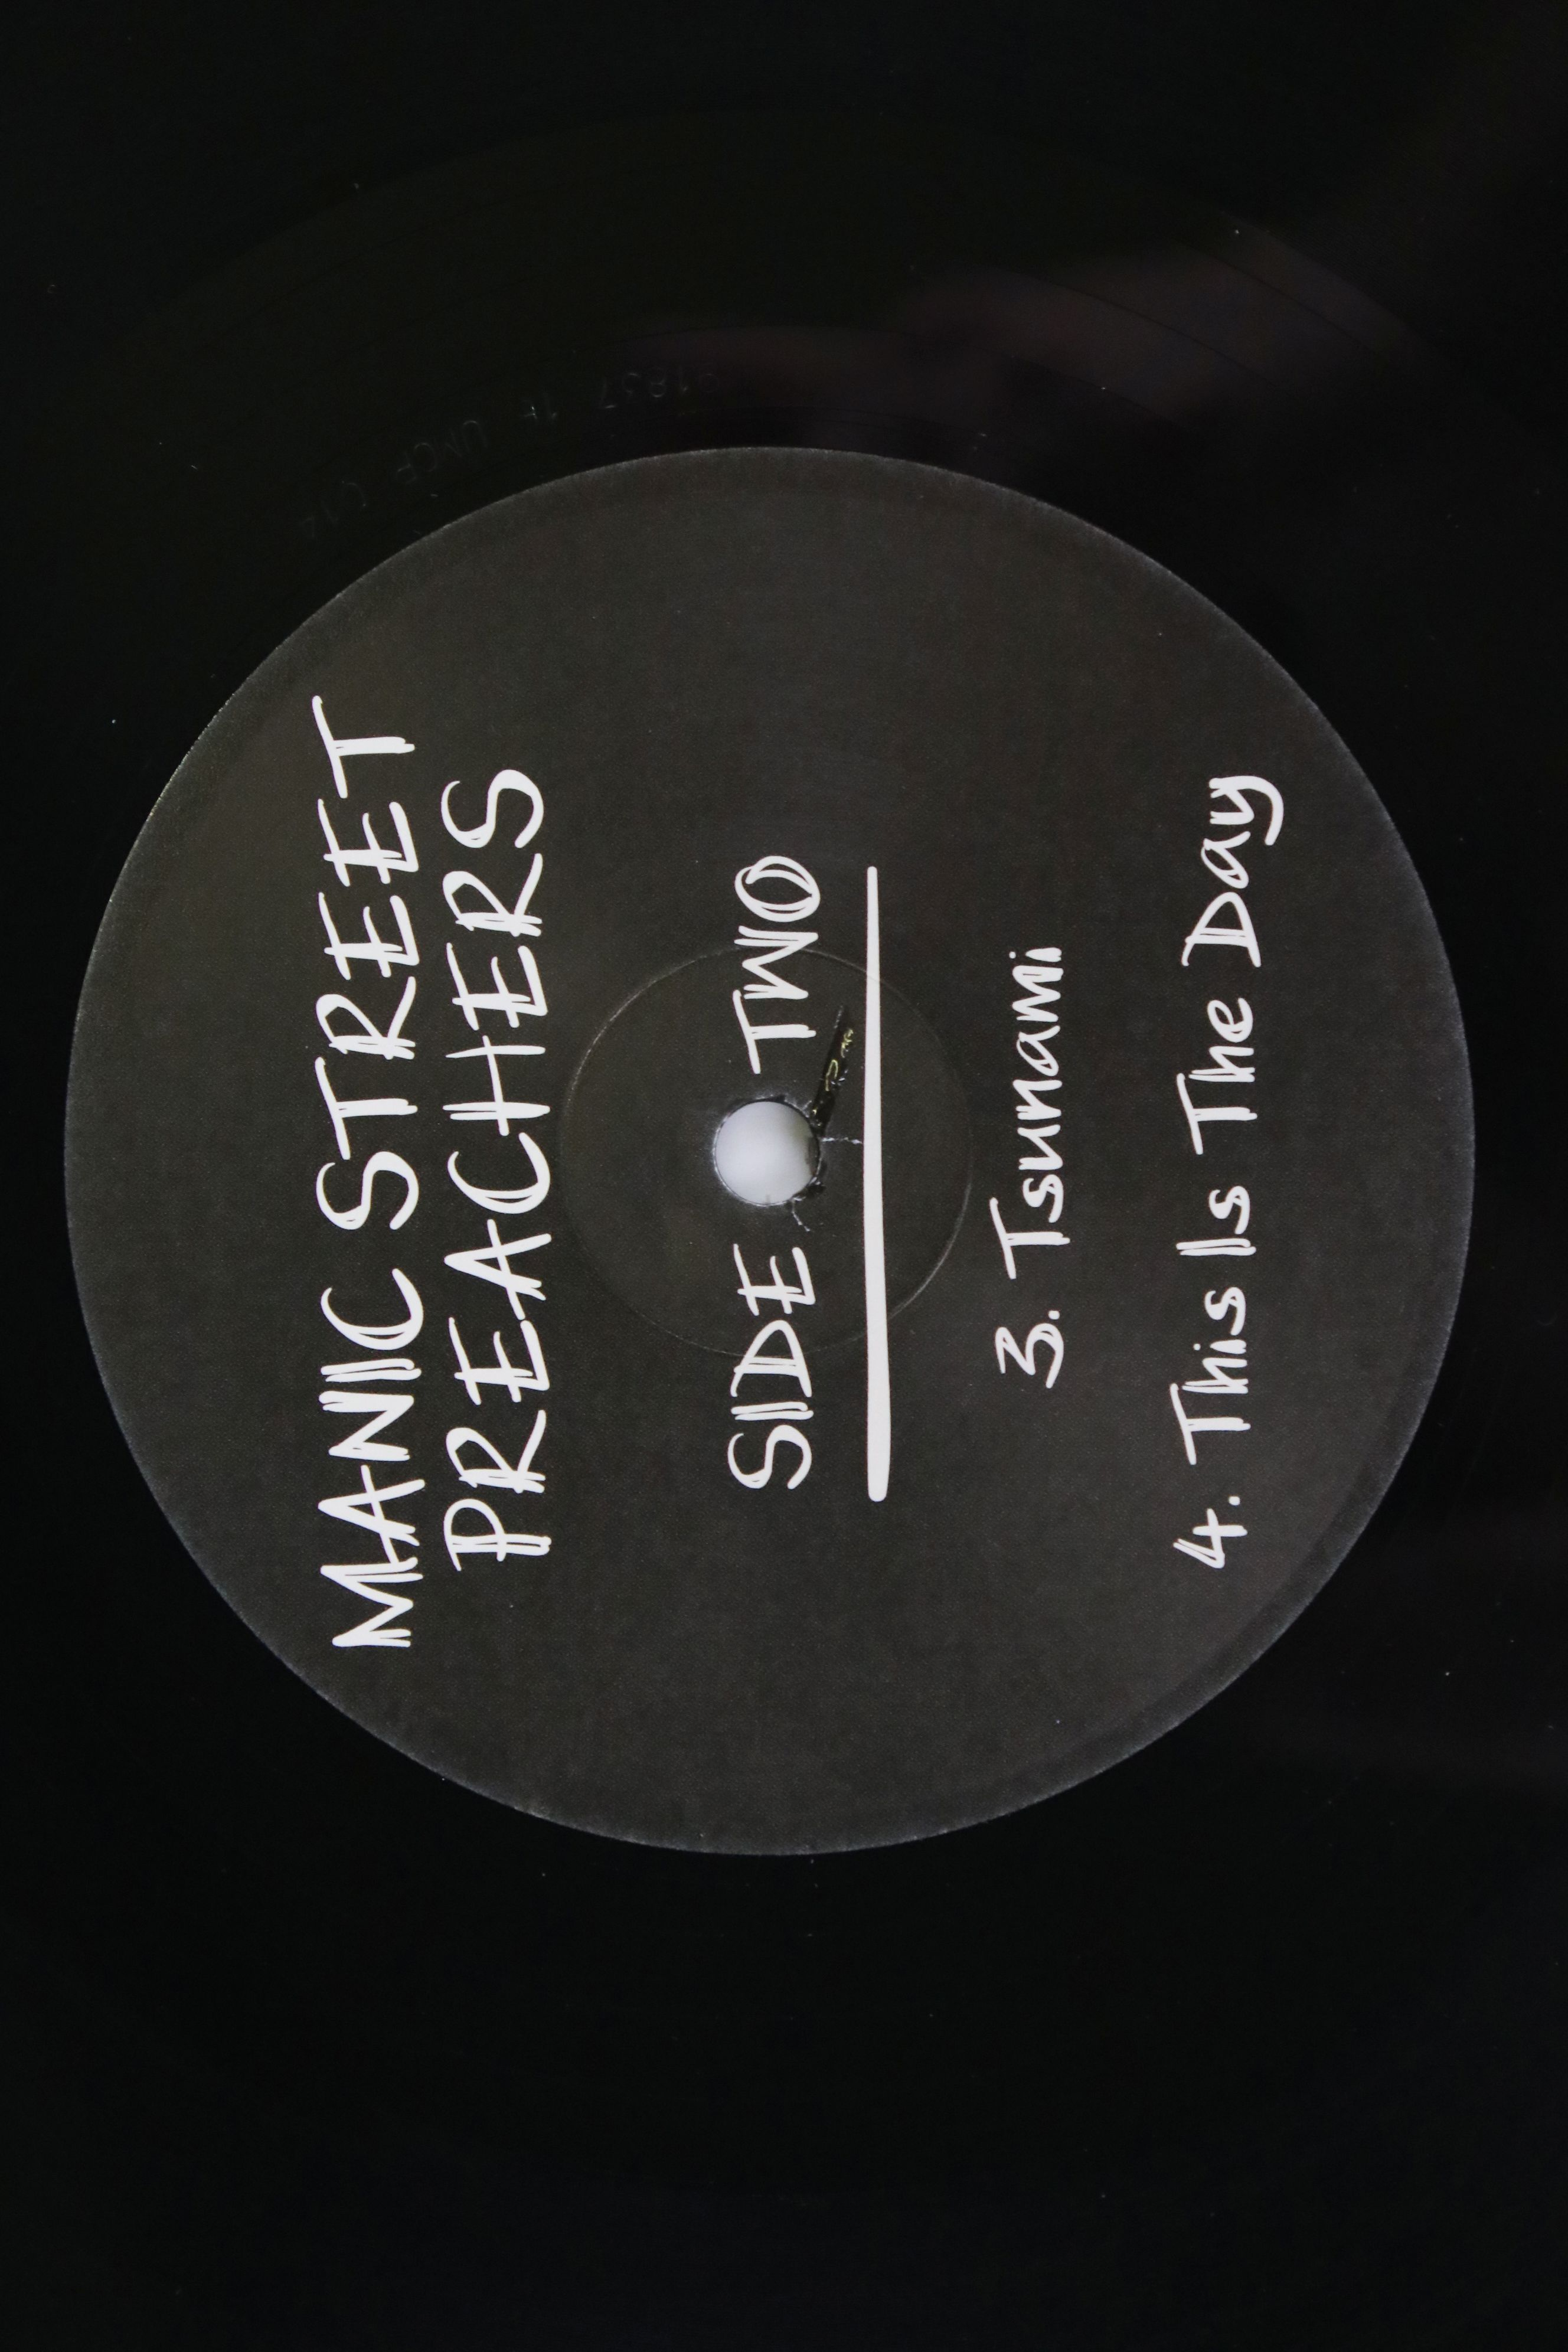 """Vinyl - Manic Street Preachers 'Memory Is The Greatest Gallery...' 12"""" single On Track with SEAT - Image 3 of 4"""